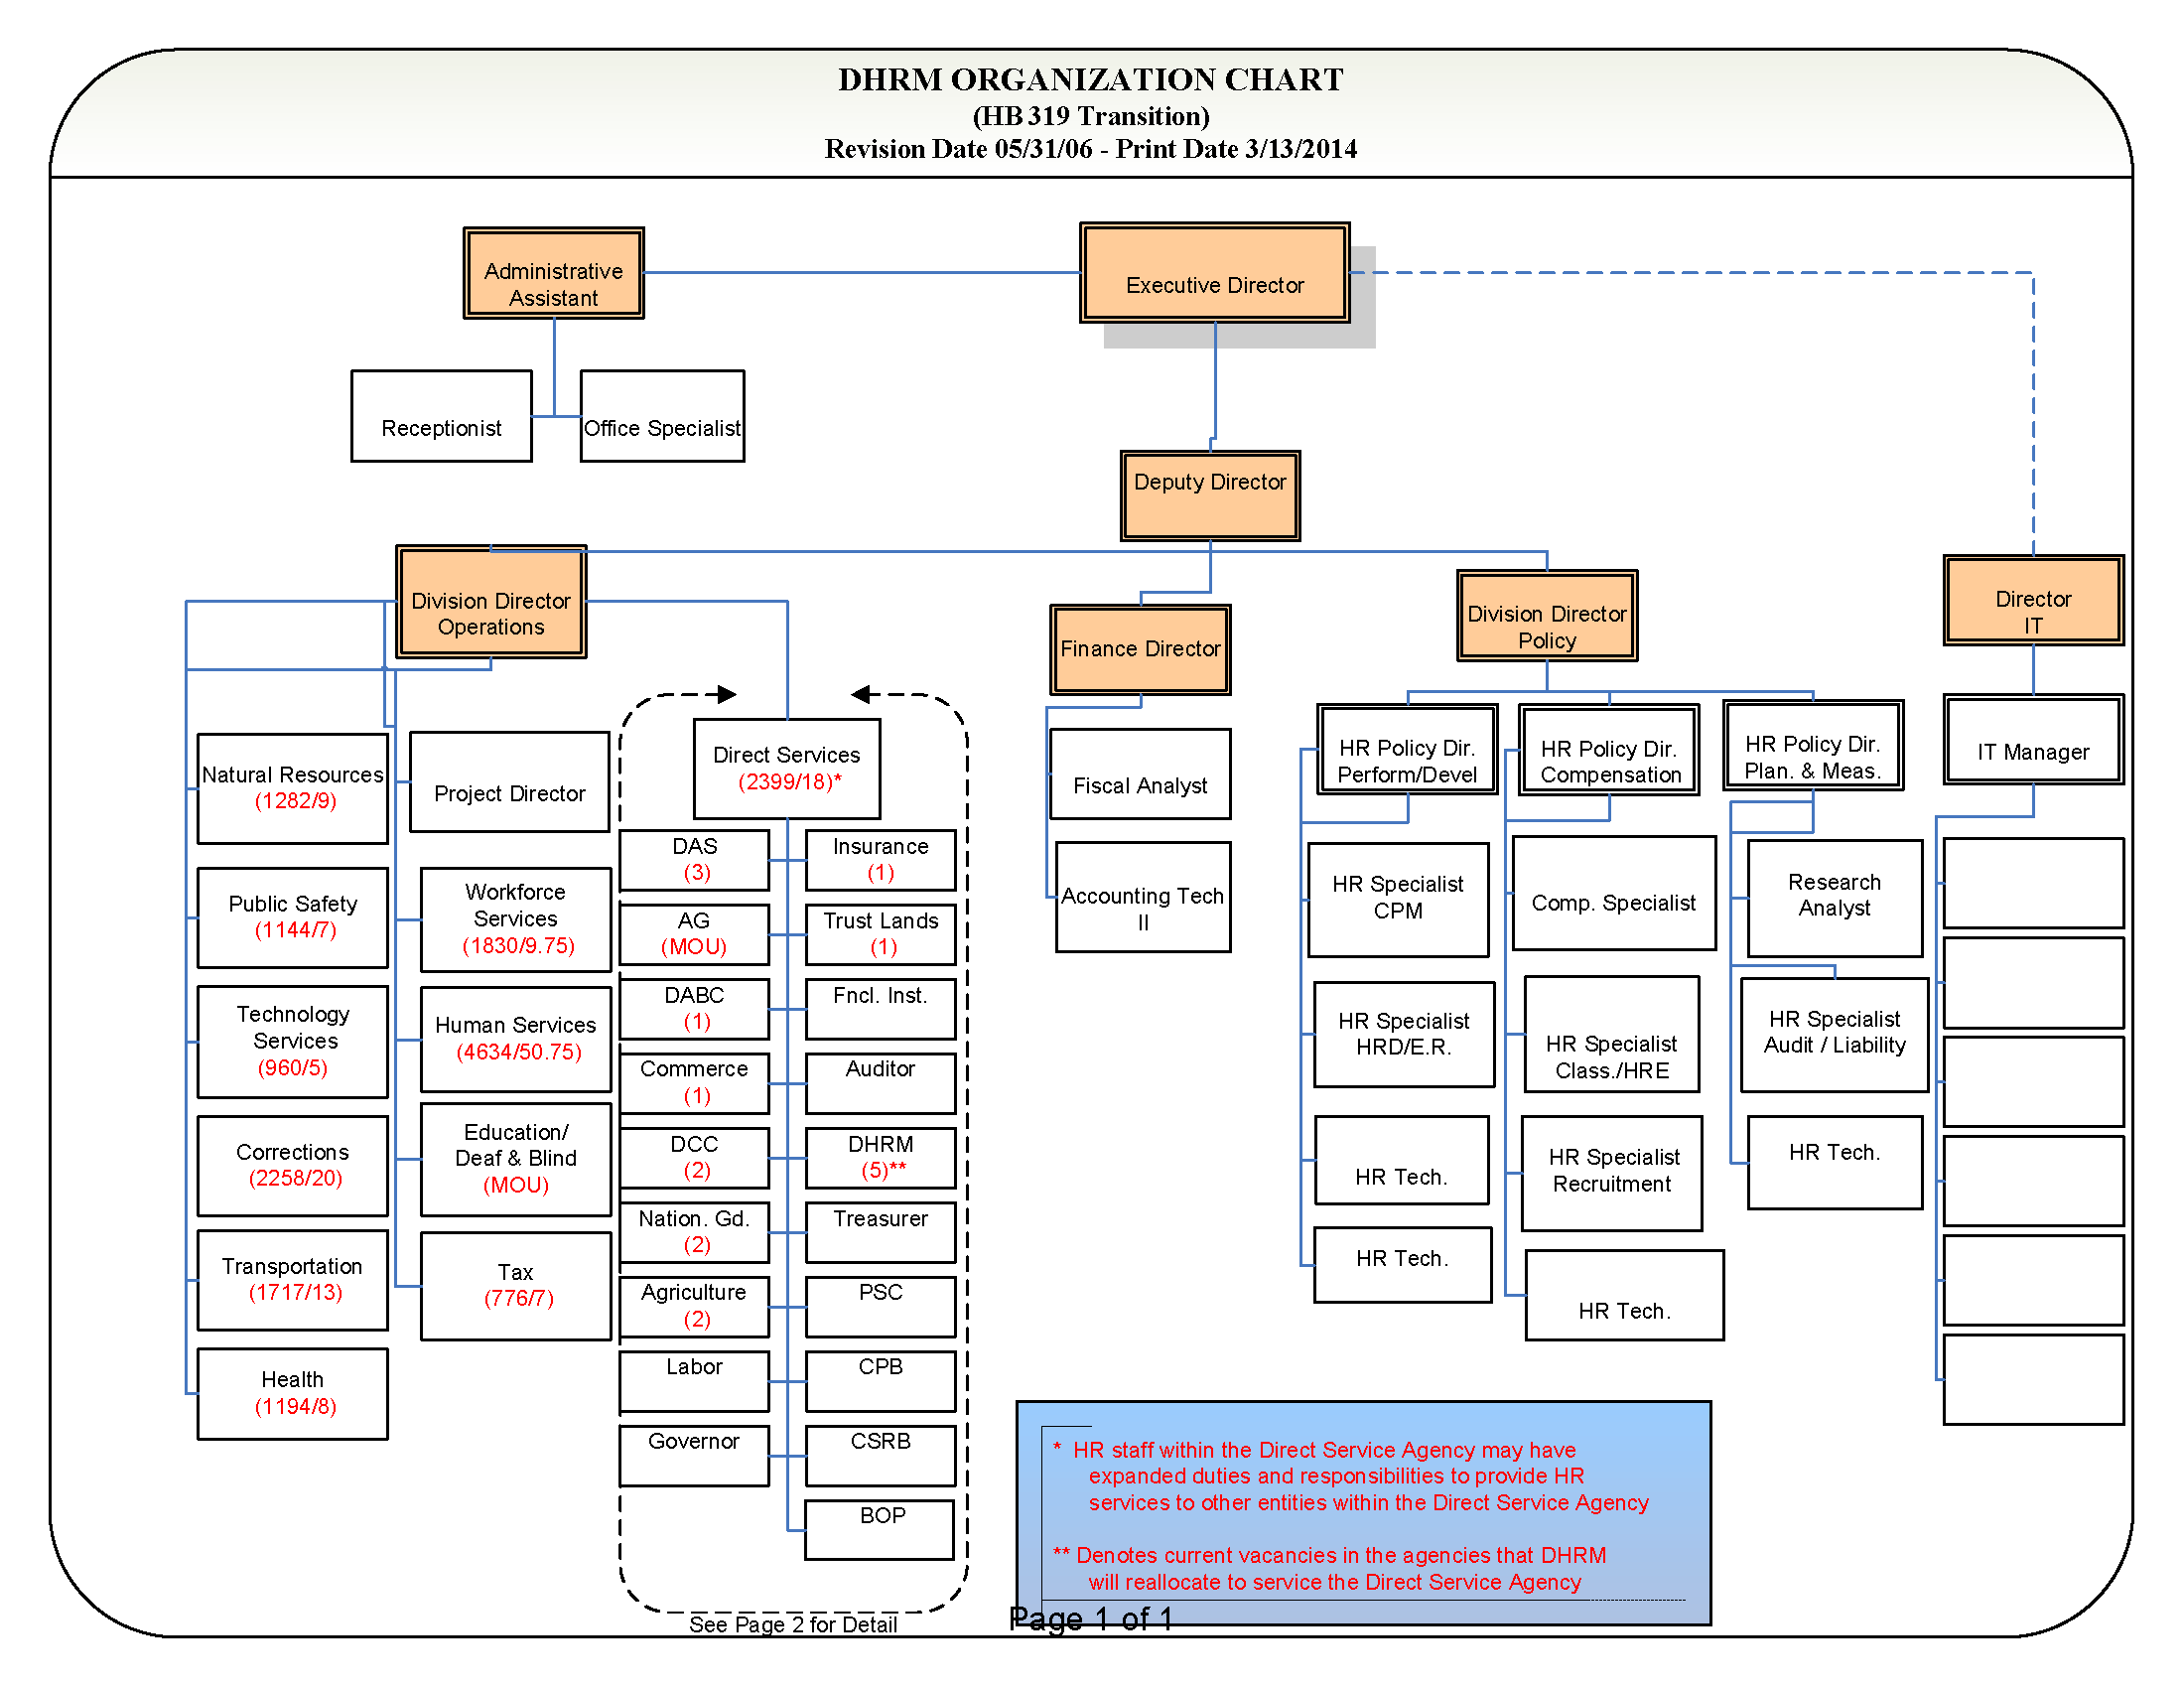 DHRM Consolidation Org Chart | Employee Gateway